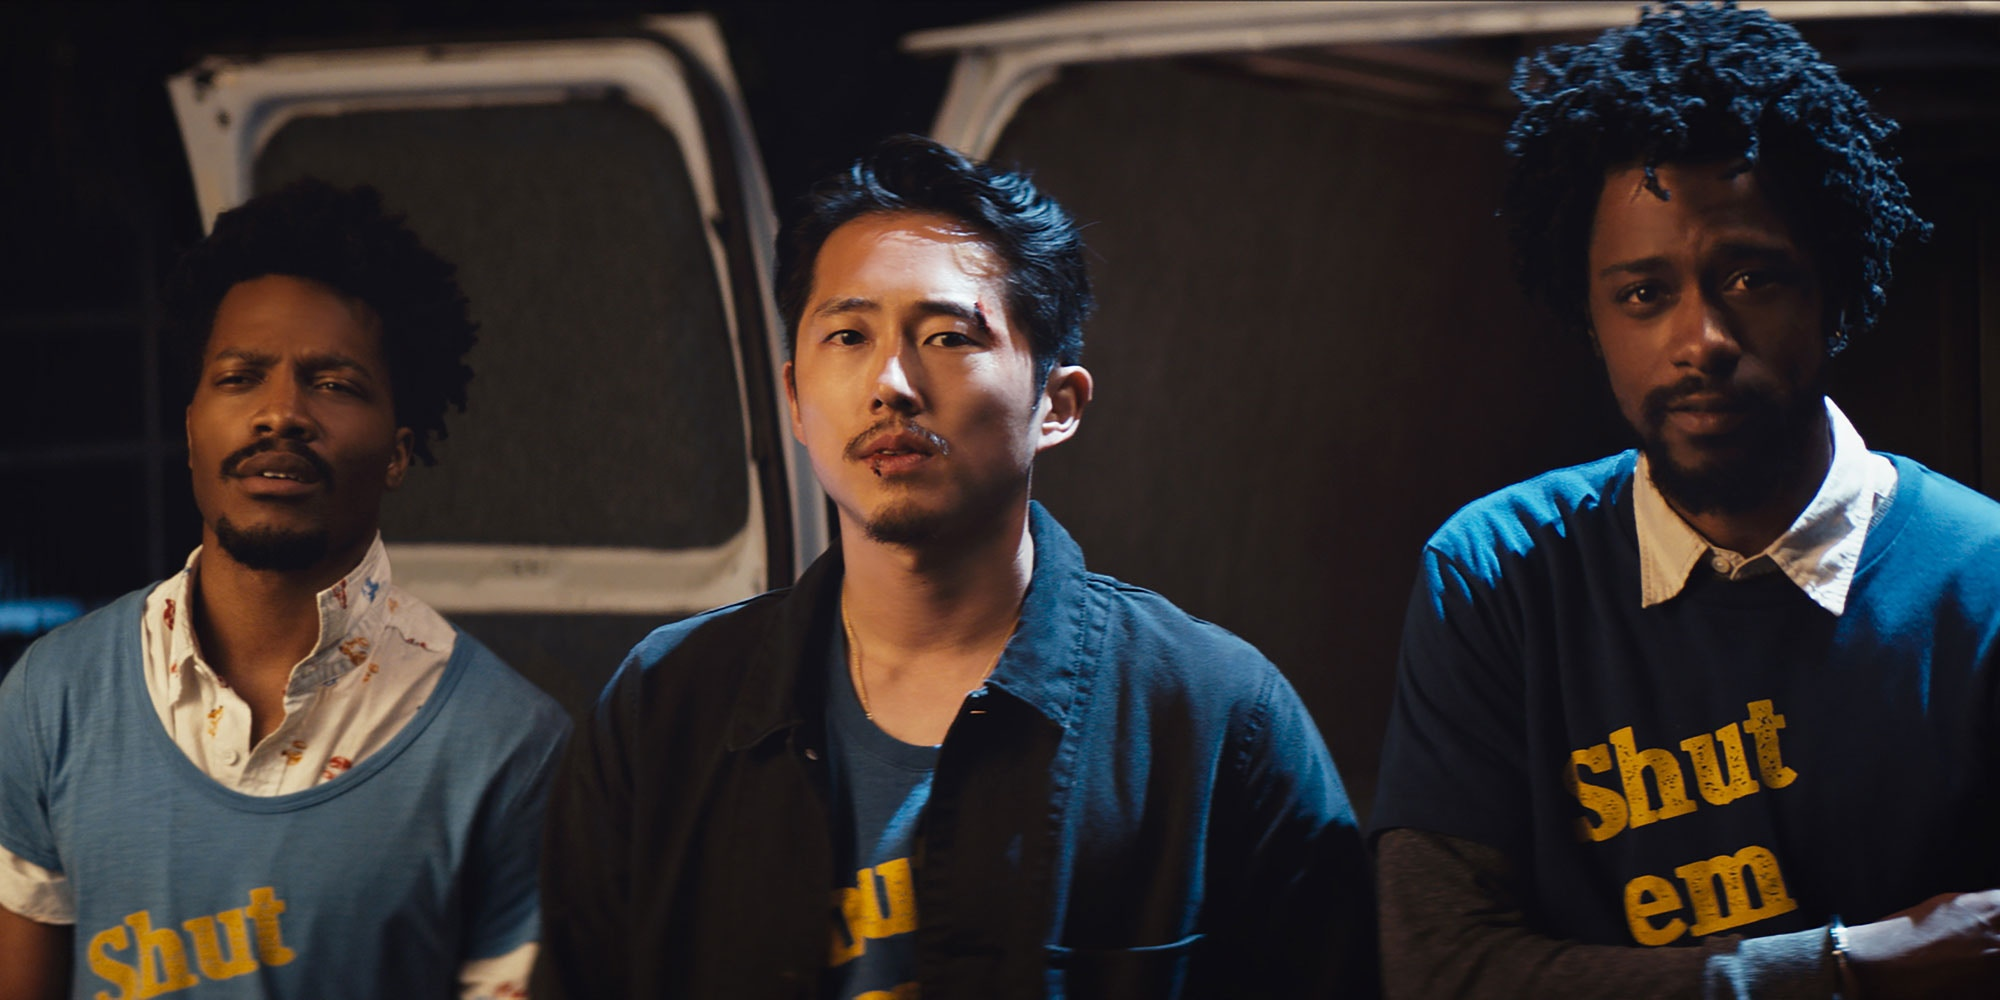 Jermaine Fowler, Steven Yeun and LaKeith Stanfield in the film.